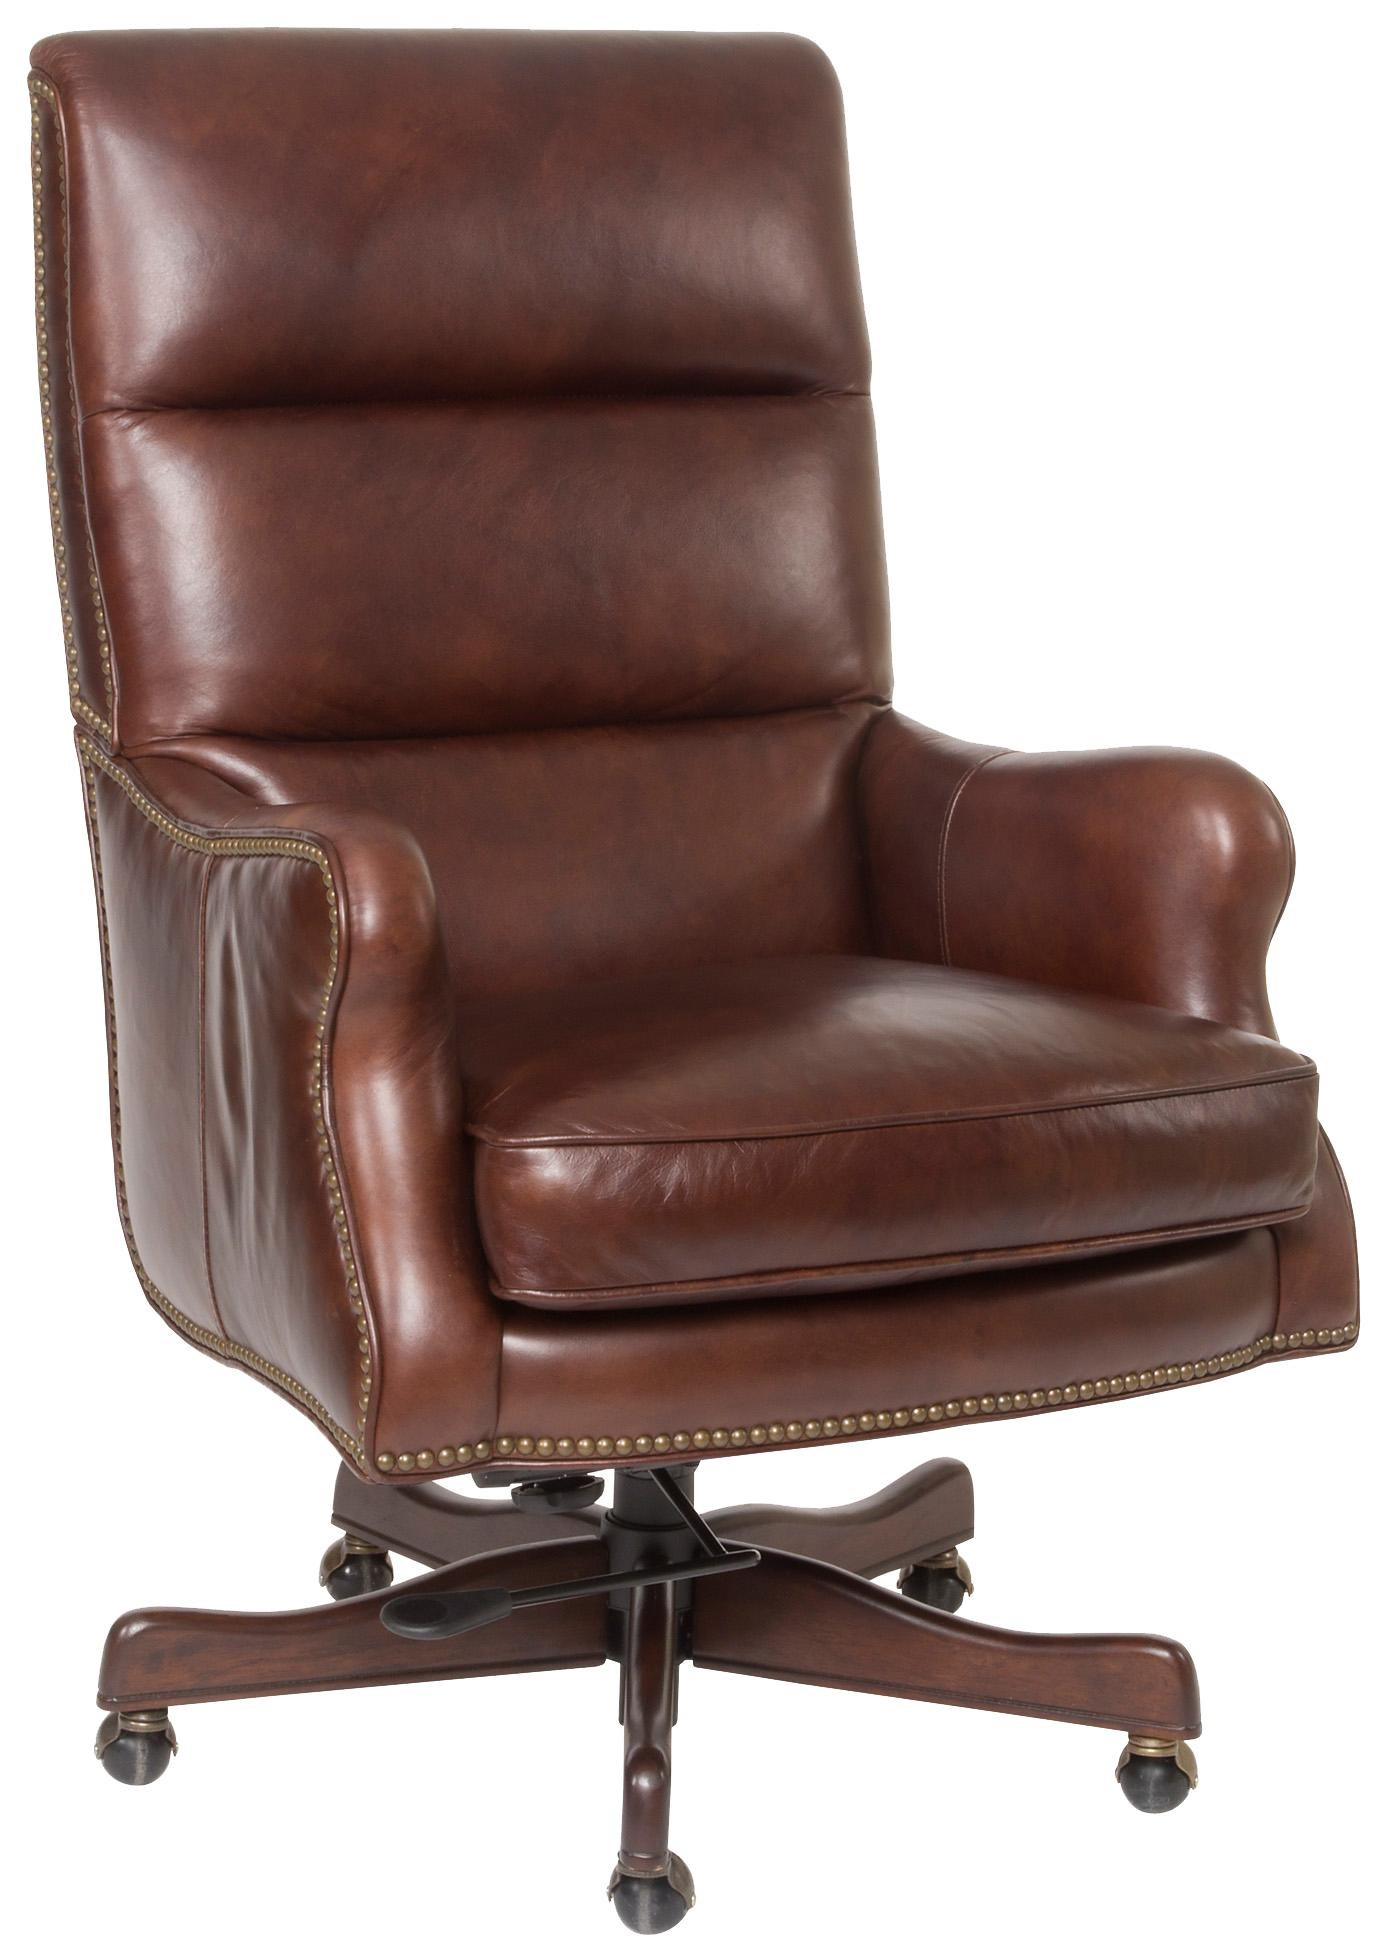 Etonnant Executive Seating Classic Styled Leather Desk Chair With Nail Head Trim By  Hooker Furniture